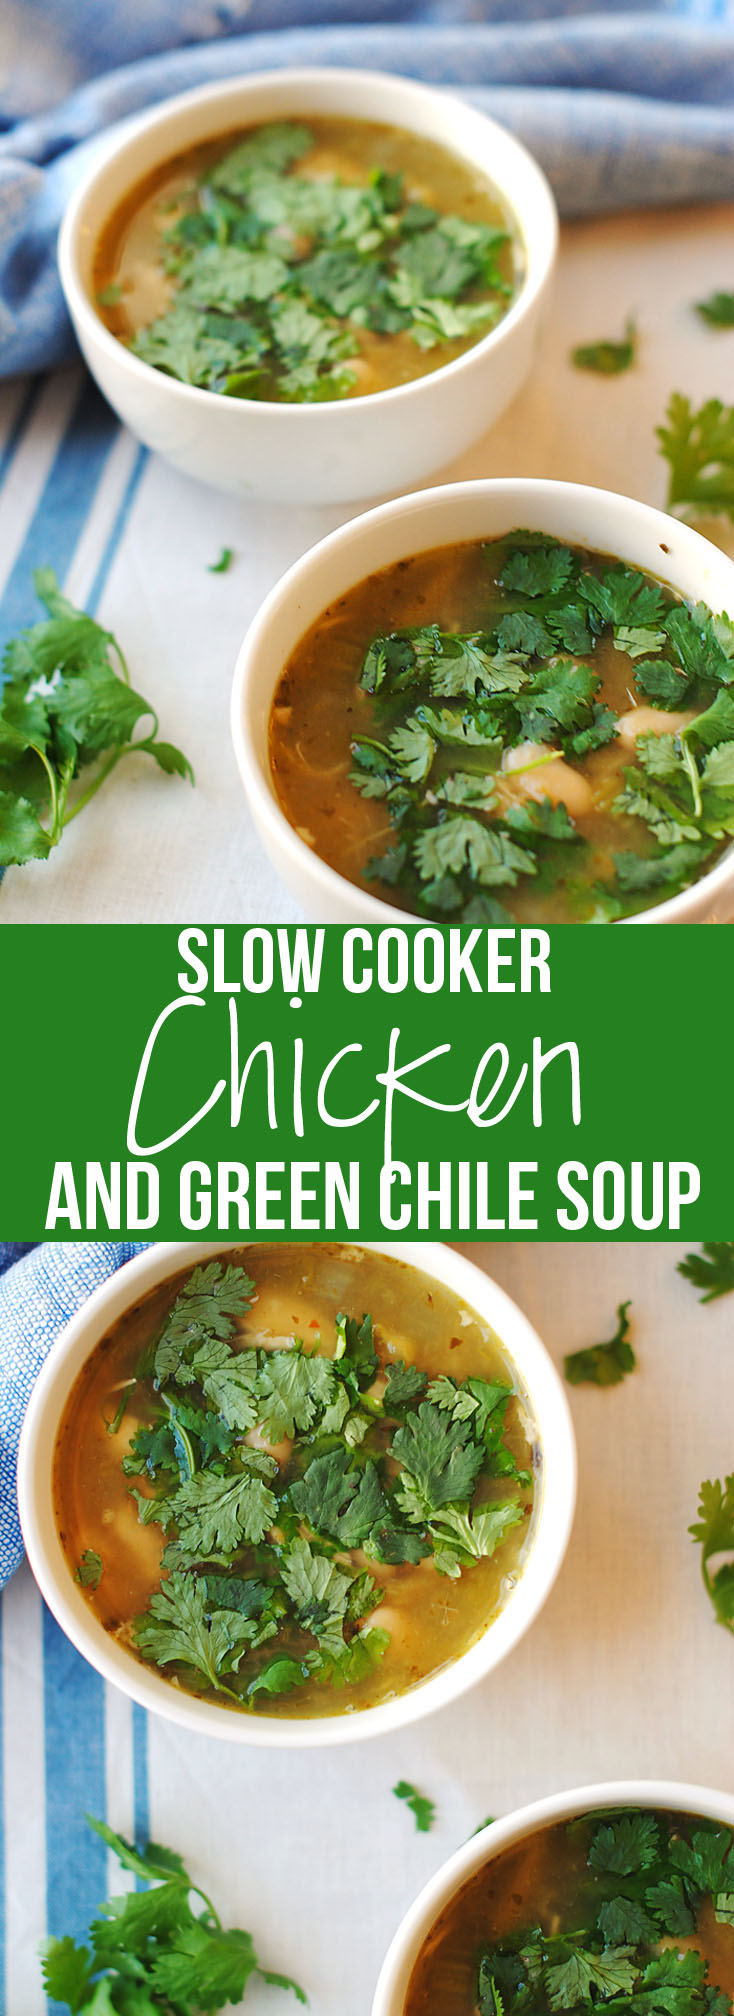 Slow Cooker Chicken and Green Chile Soup   Eat Yourself Skinny